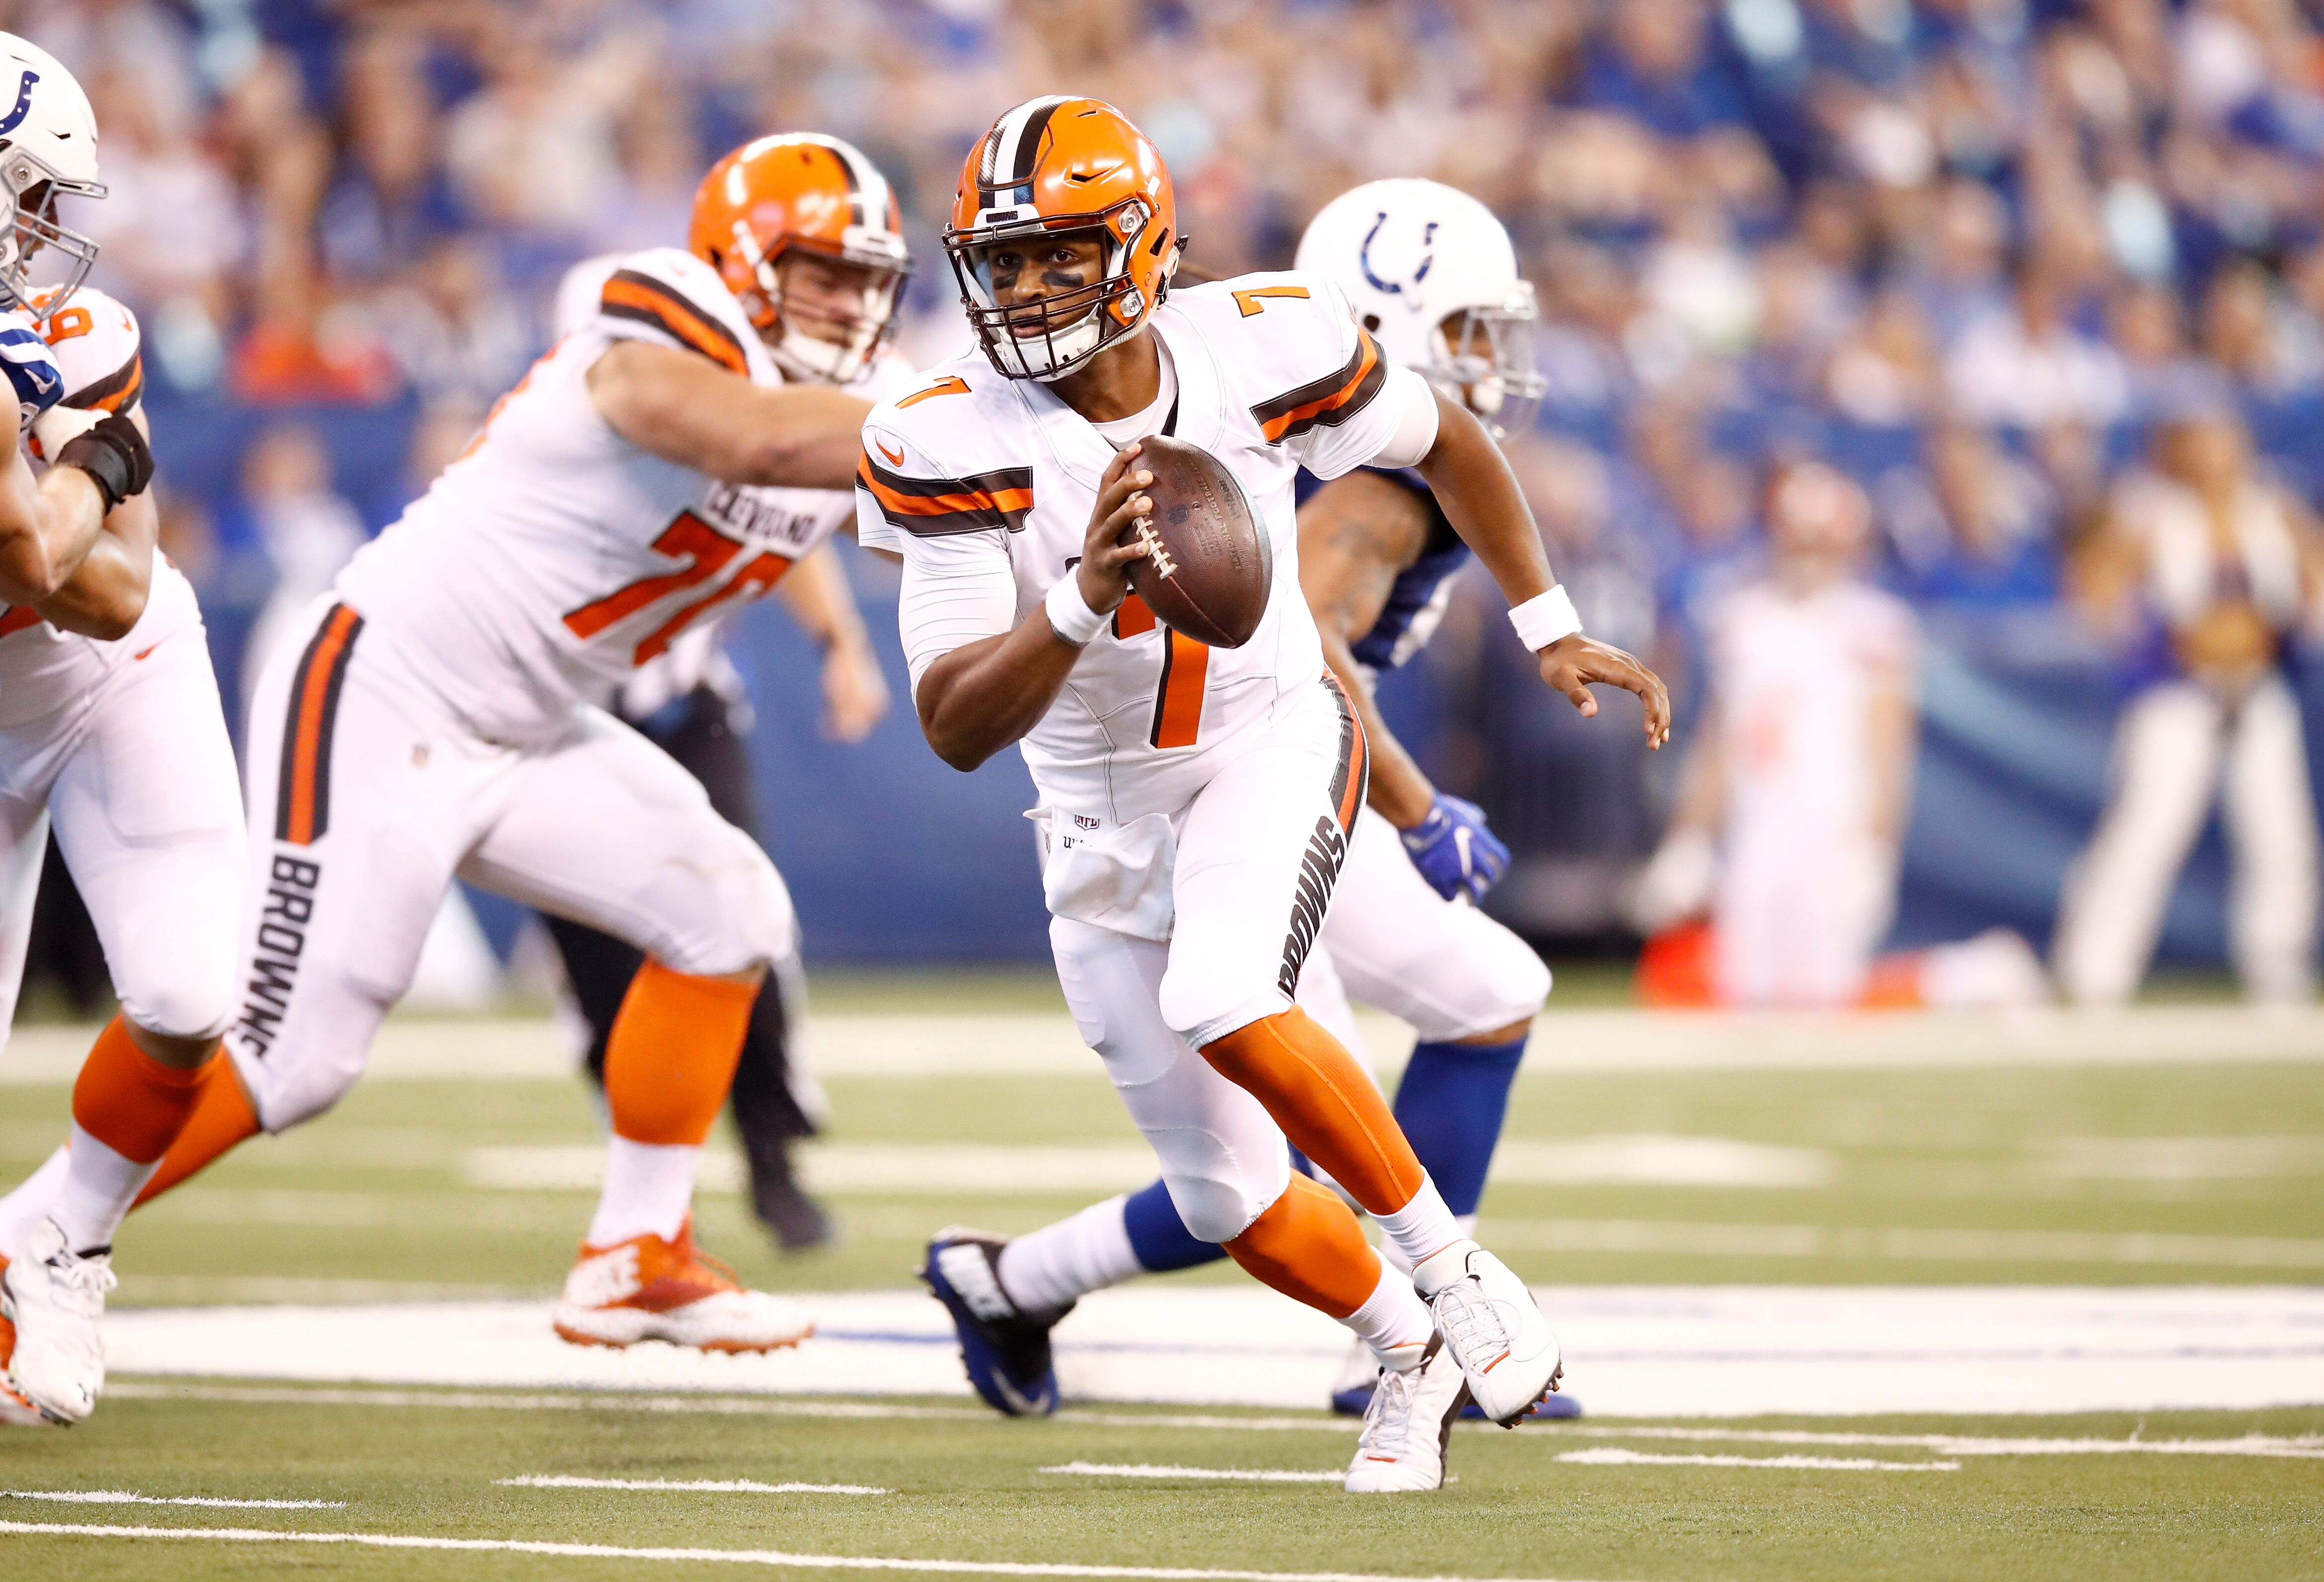 853158392-cleveland-browns-v-indianapolis-colts.jpg